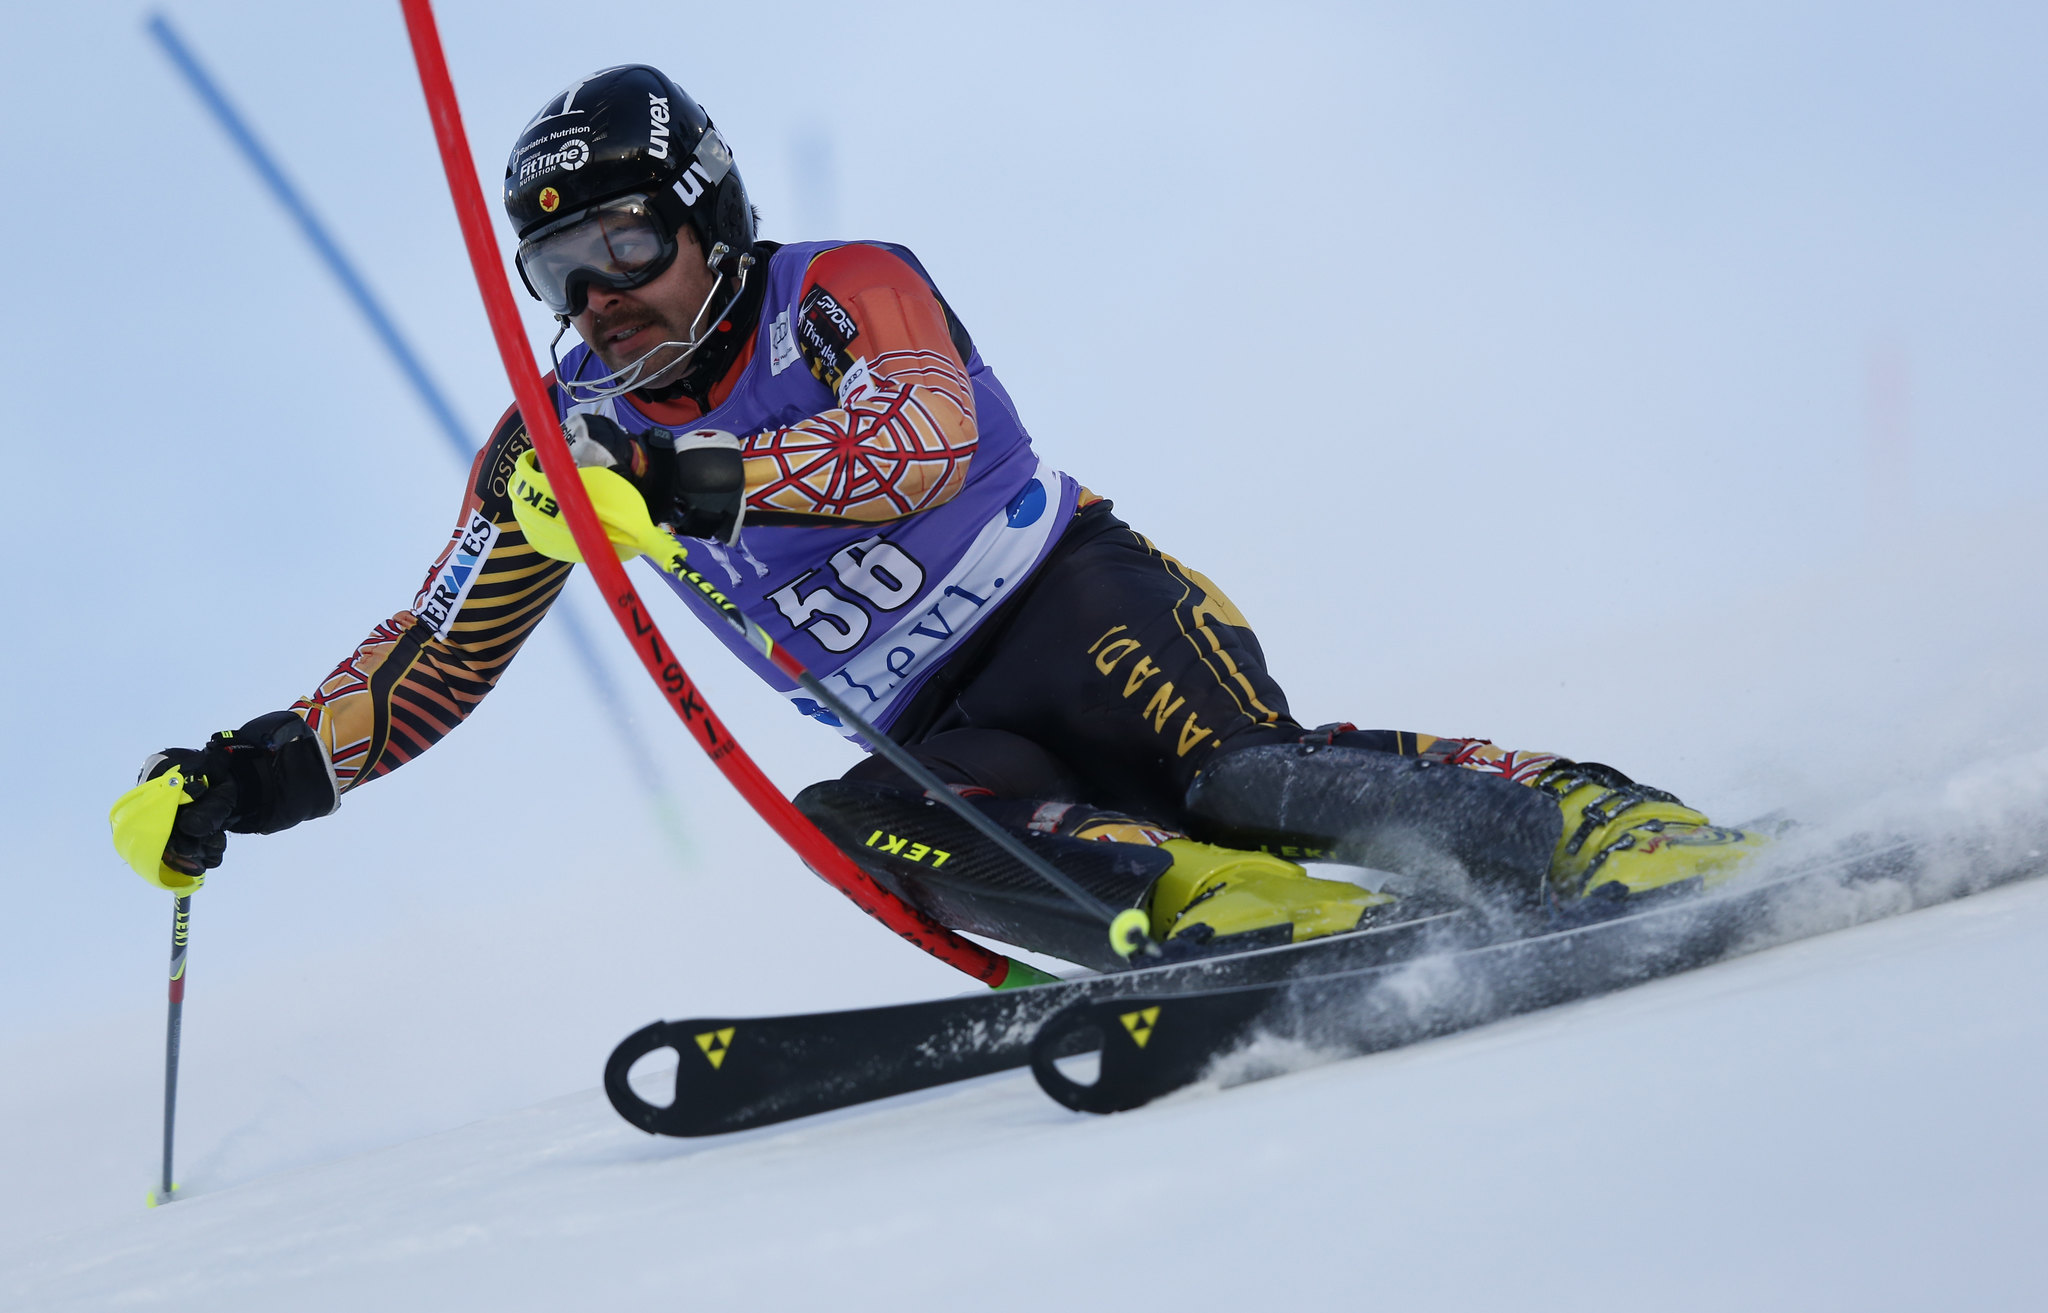 Cousineau tackles the slalom course in Levi, Finland.